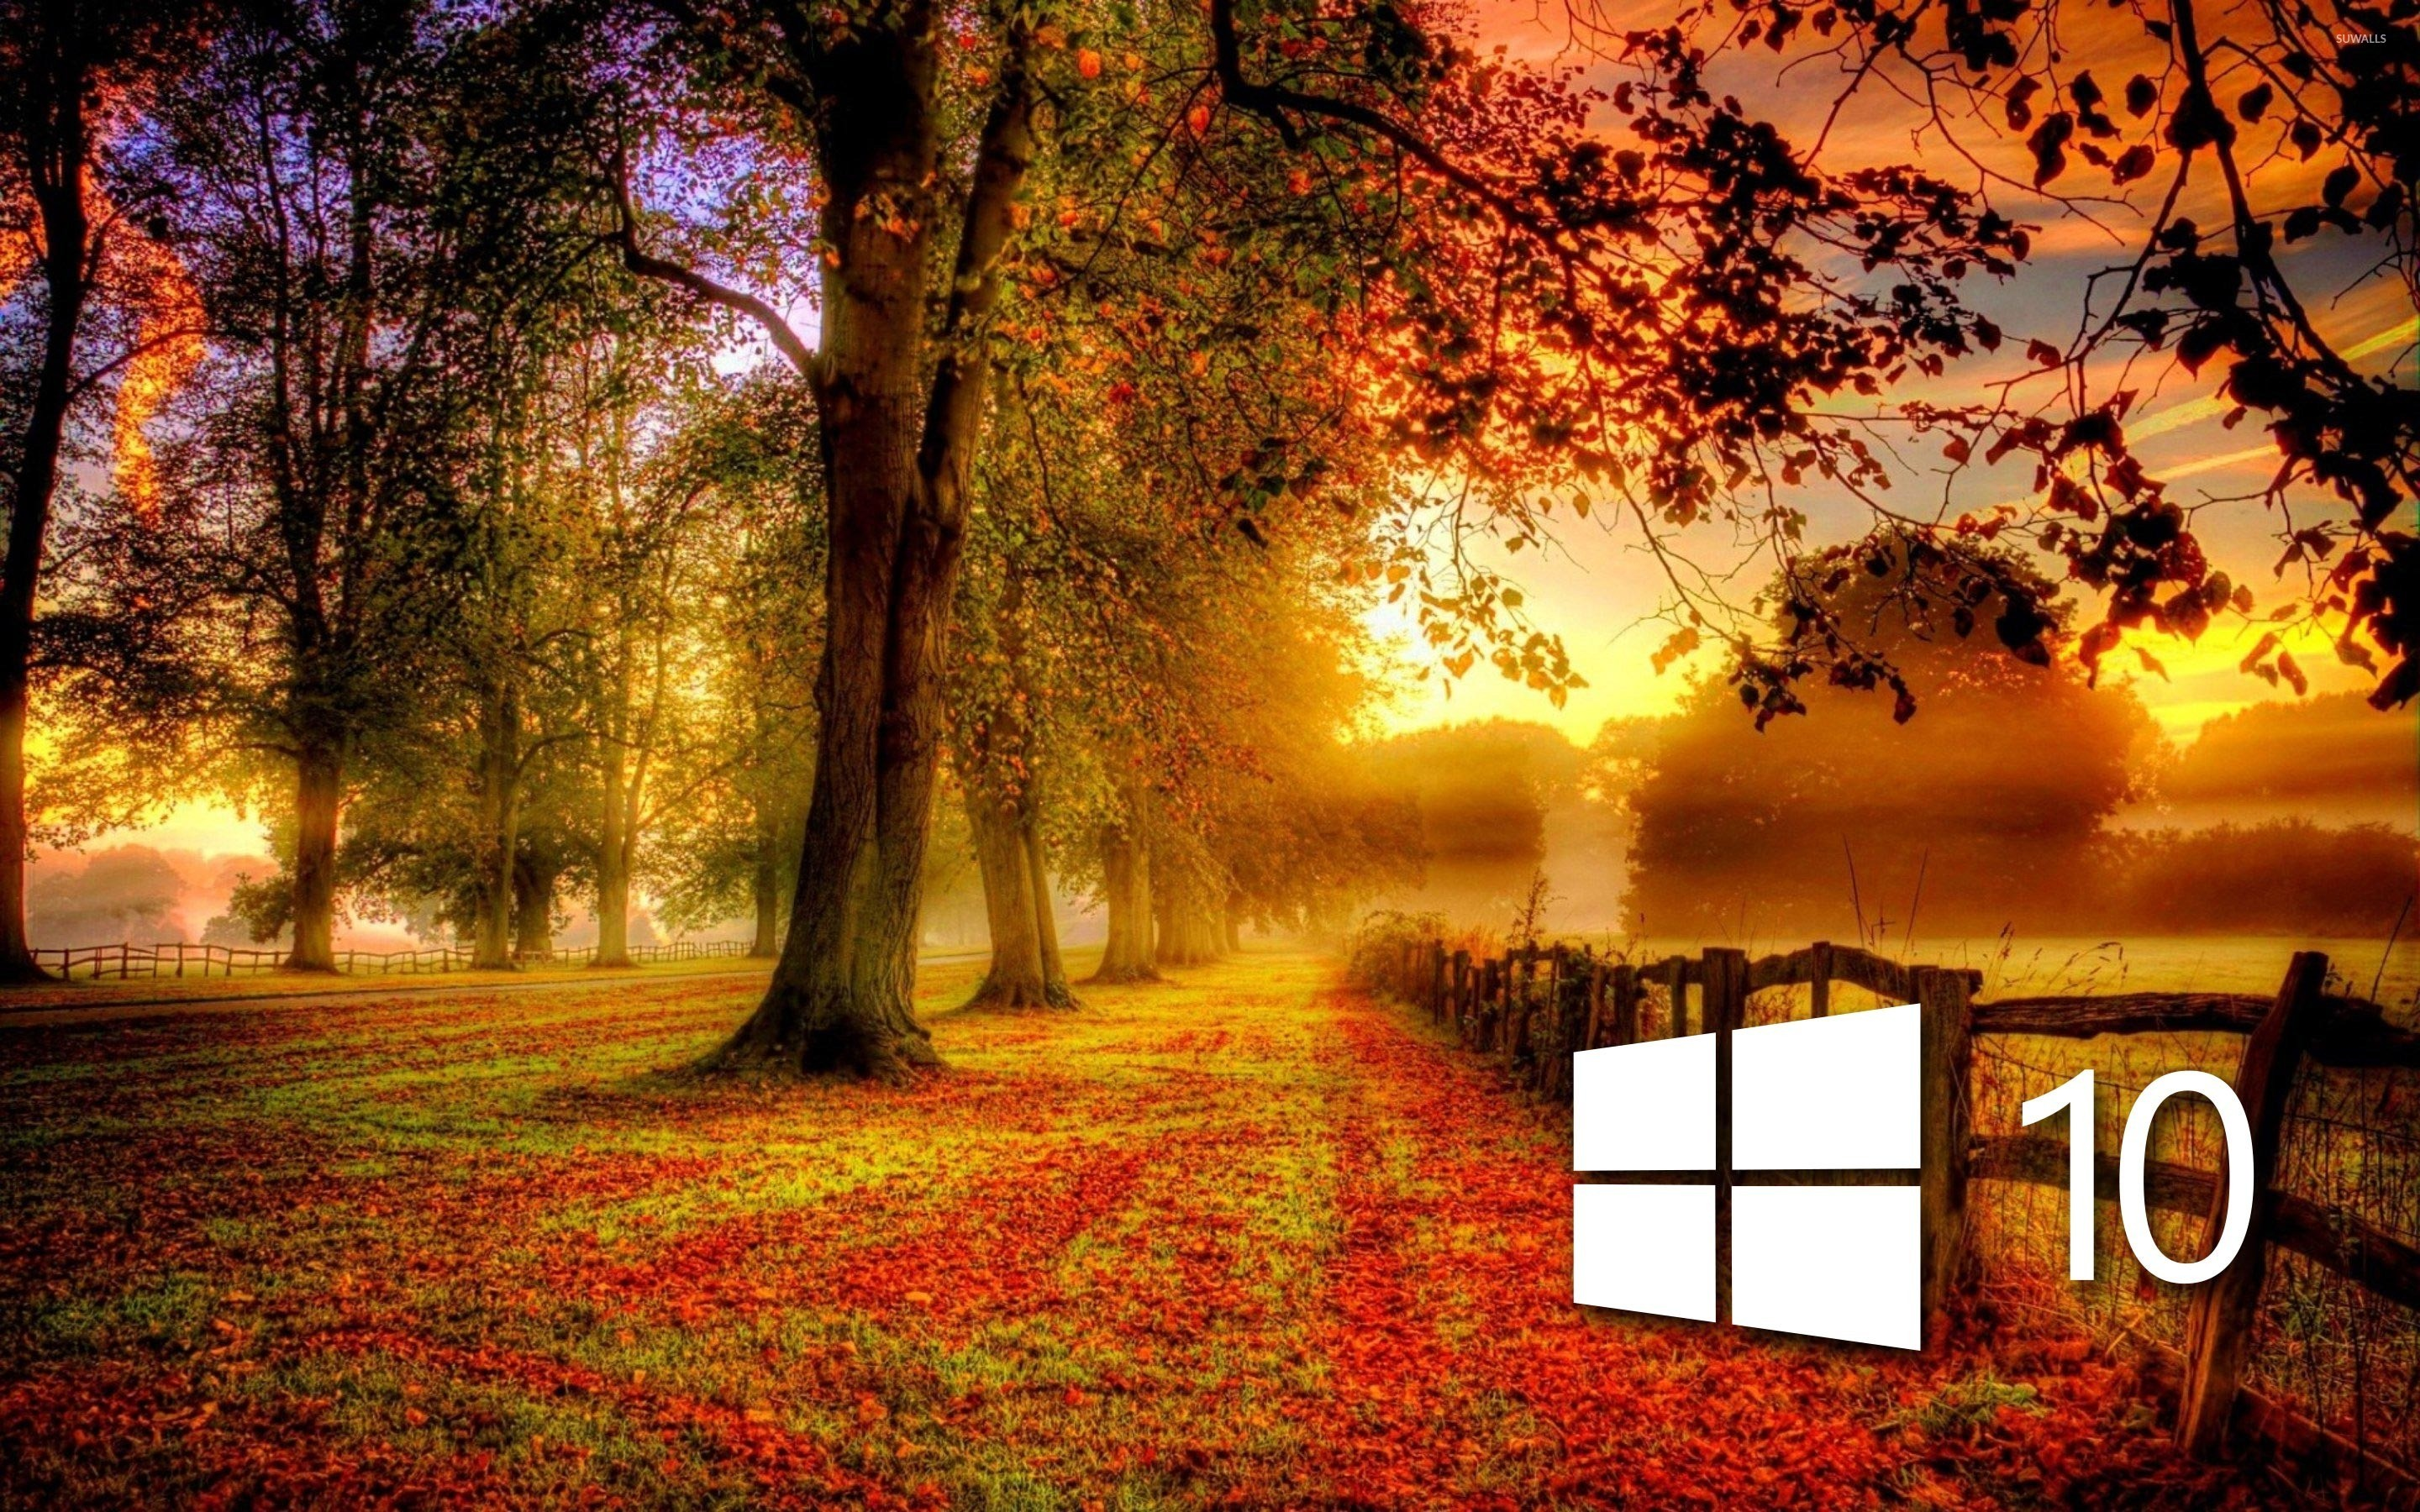 Fall Desktop Wallpaper 2500x1600 Farewell Backgrounds 183 ① Wallpapertag